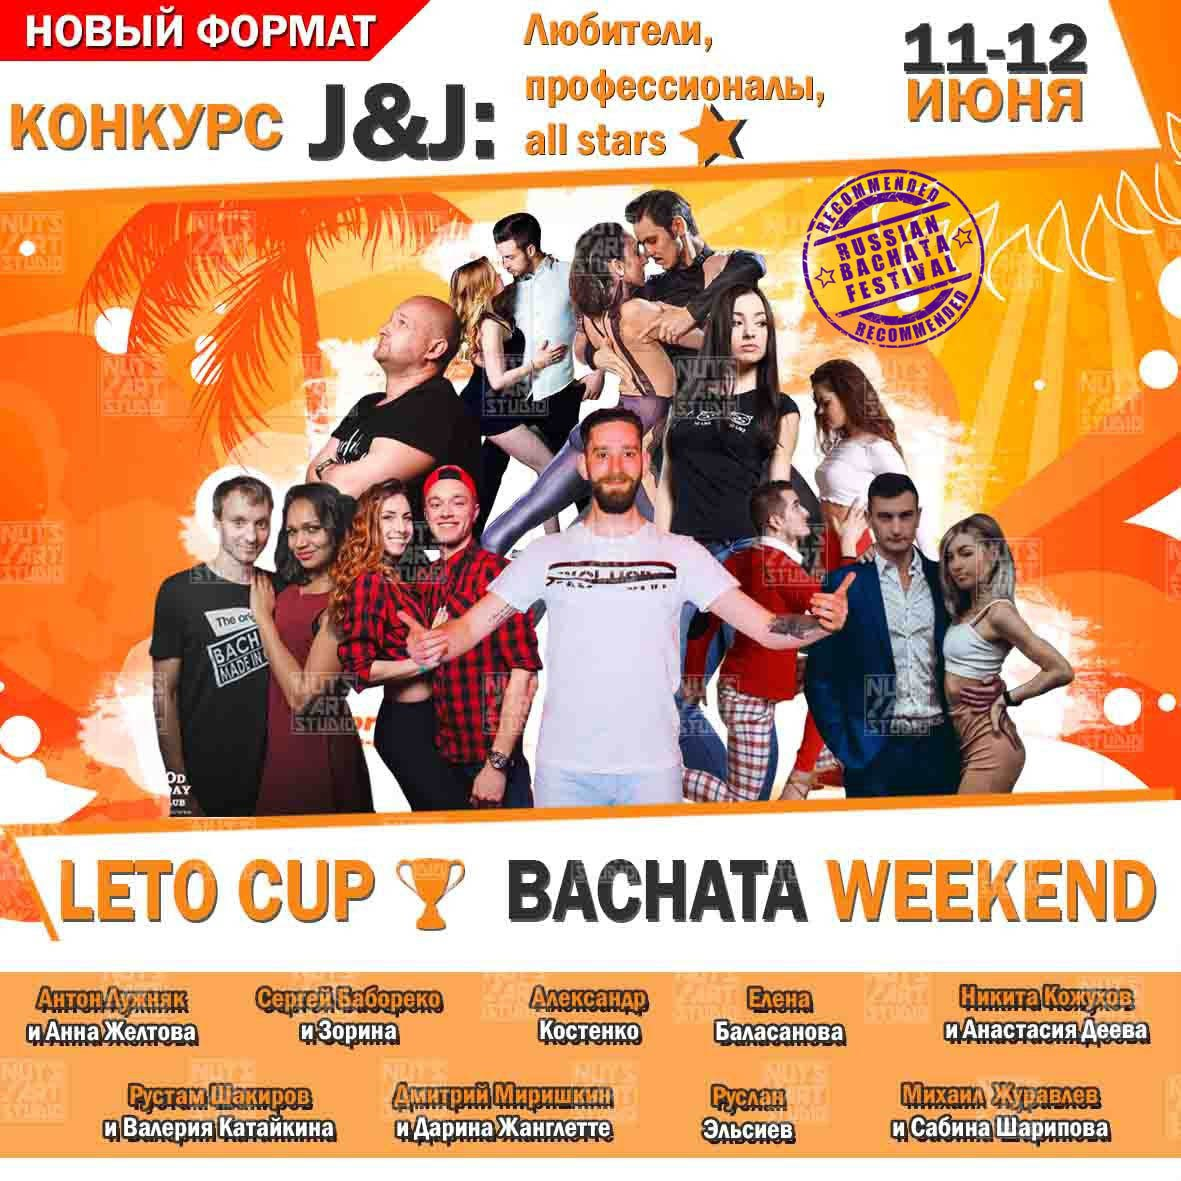 LETO CUP BACHATA WEEKEND